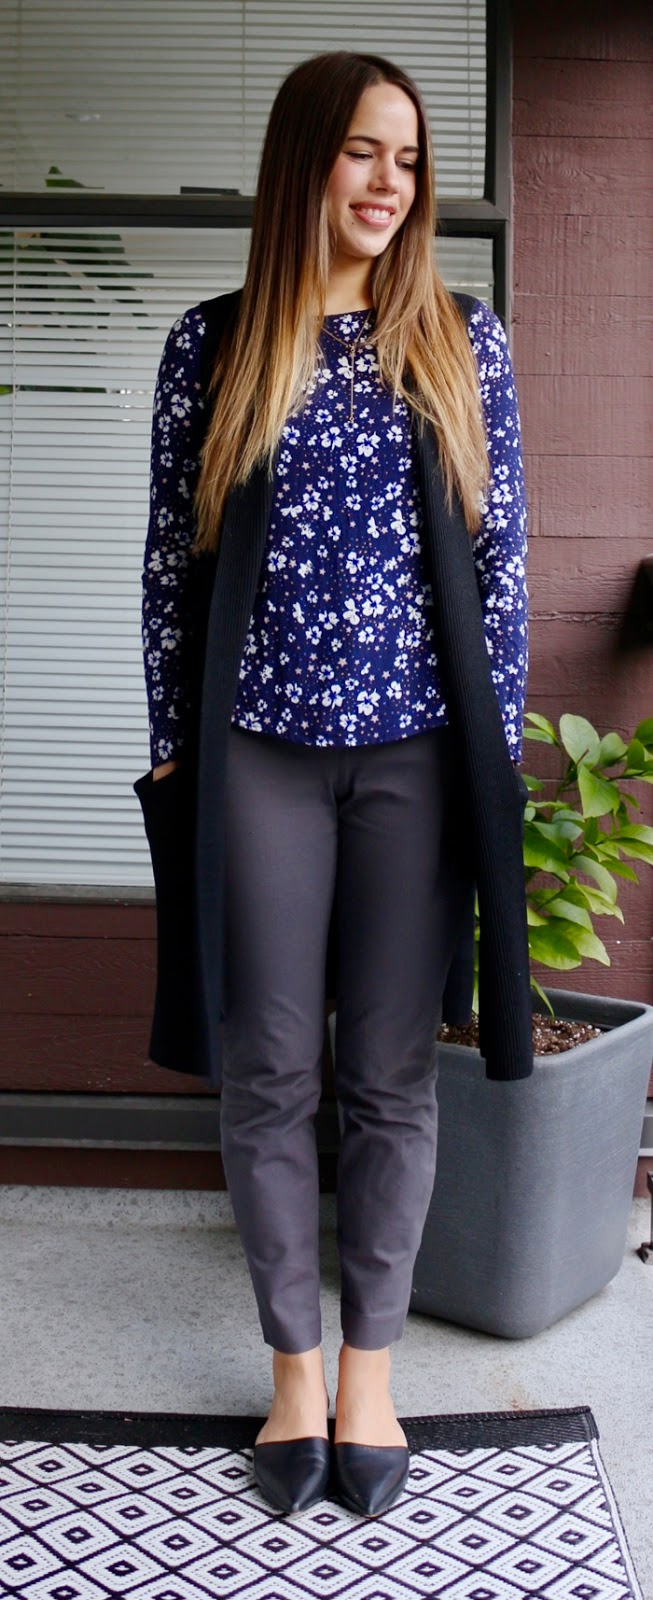 Jules in Flats - Floral Blouse with Sweater Vest and Ankle Pants for Work